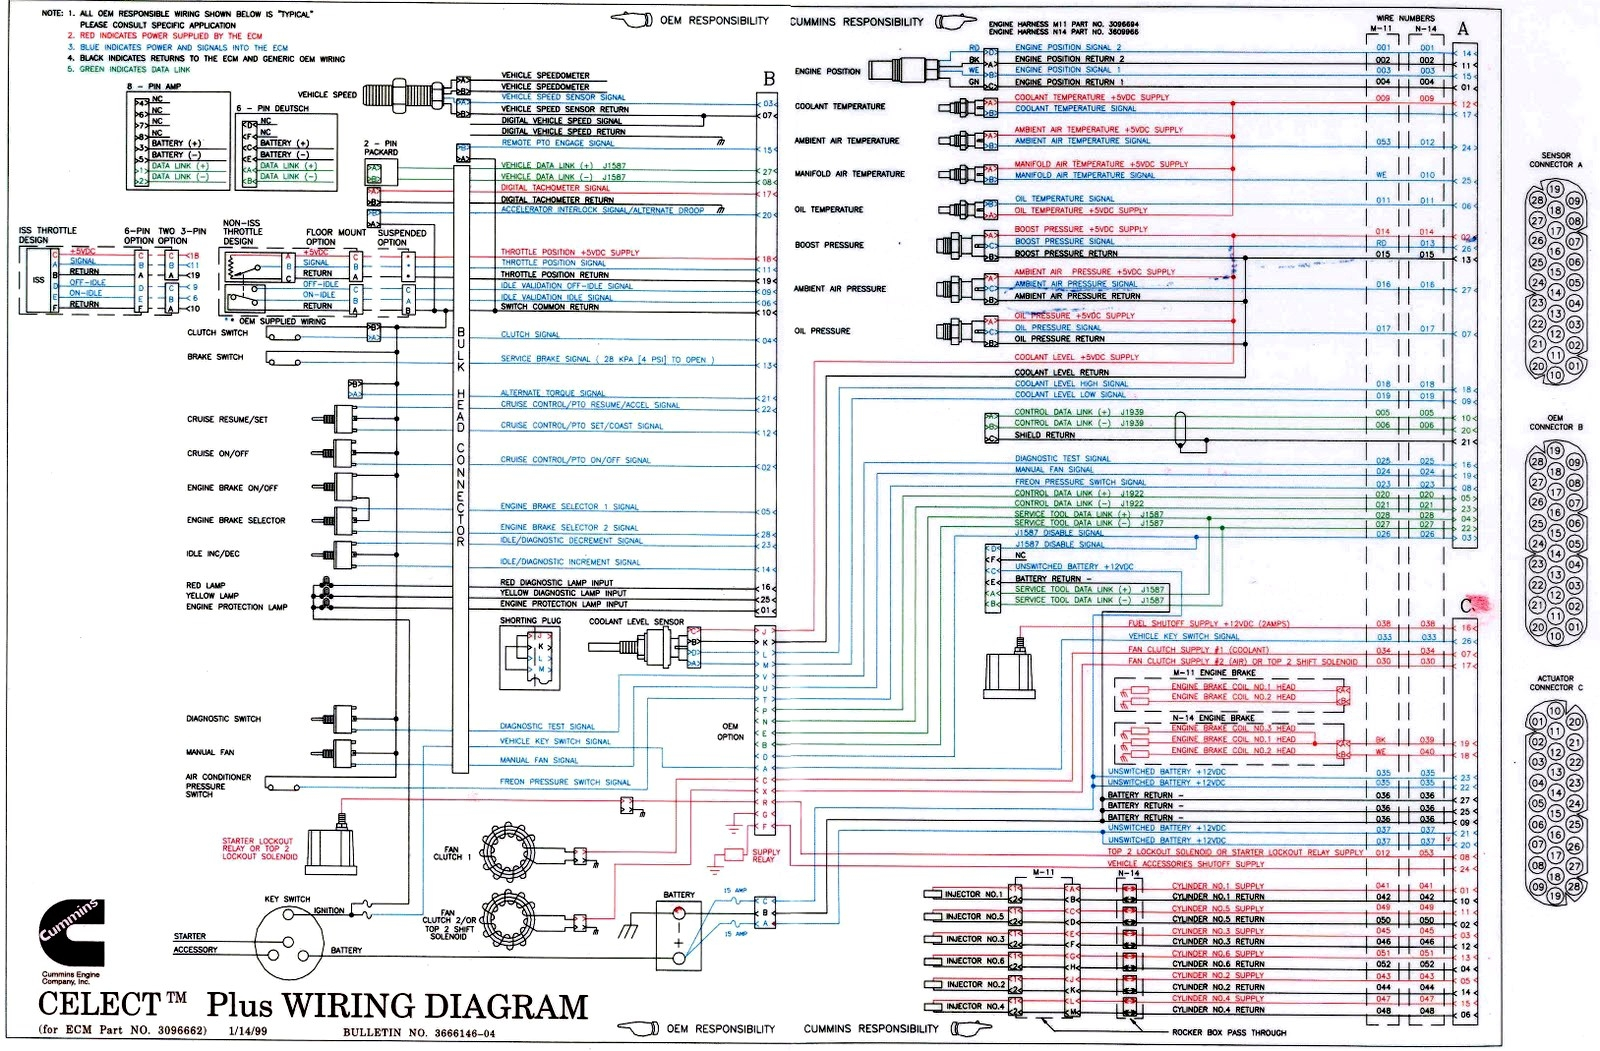 cummins ecm wiring diagram Collection-cummins n14 plus engine diagram circuit diagram symbols u2022 rh veturecapitaltrust co Volvo VNL Truck Wiring 1-g